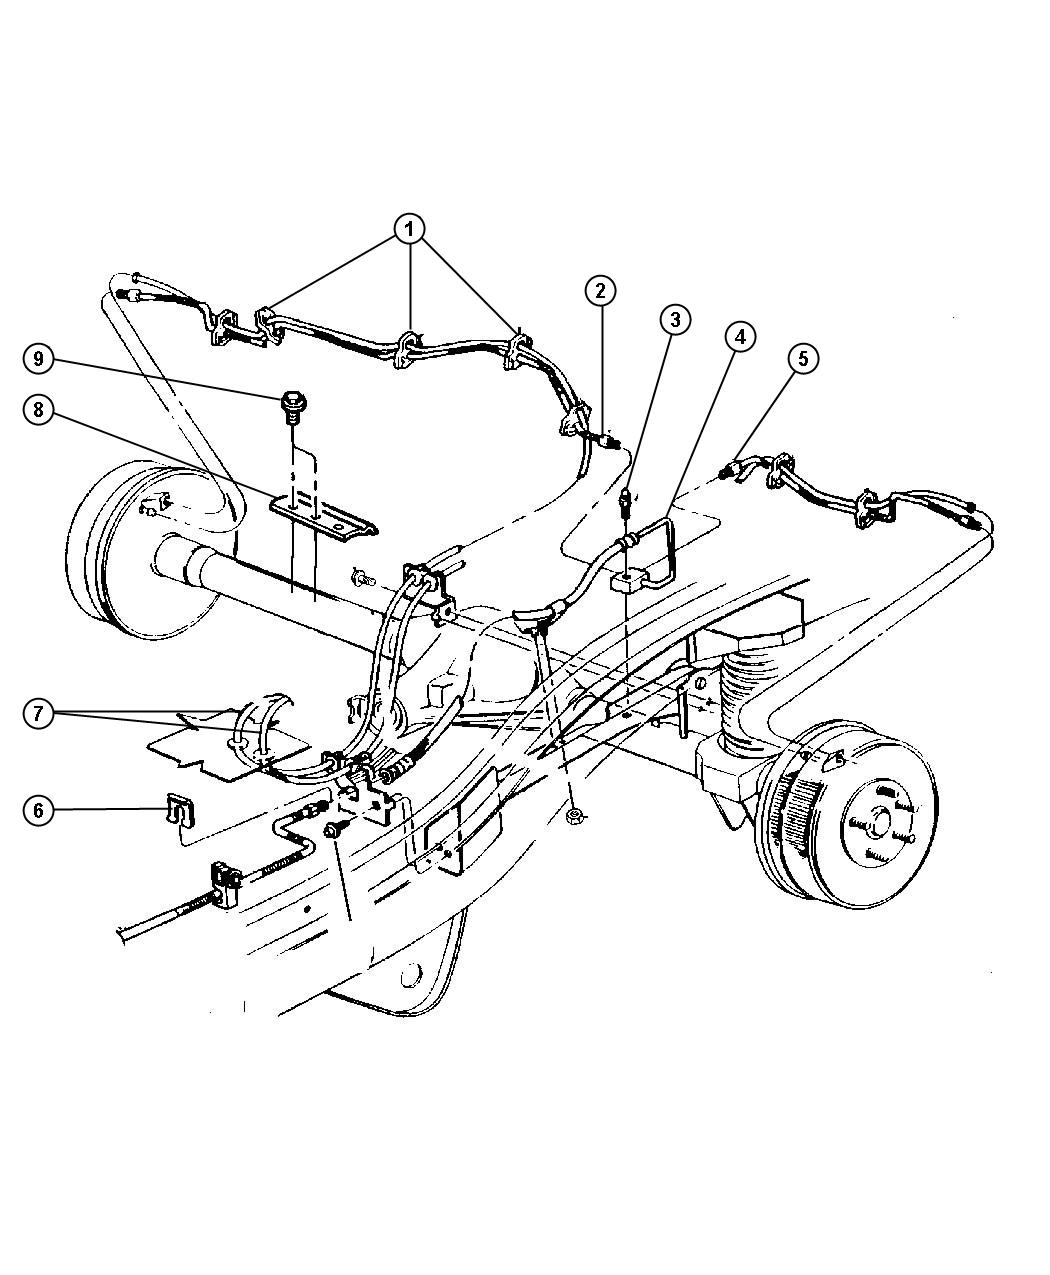 Service Manual Jeep Grand Cherokee Diagram Showing